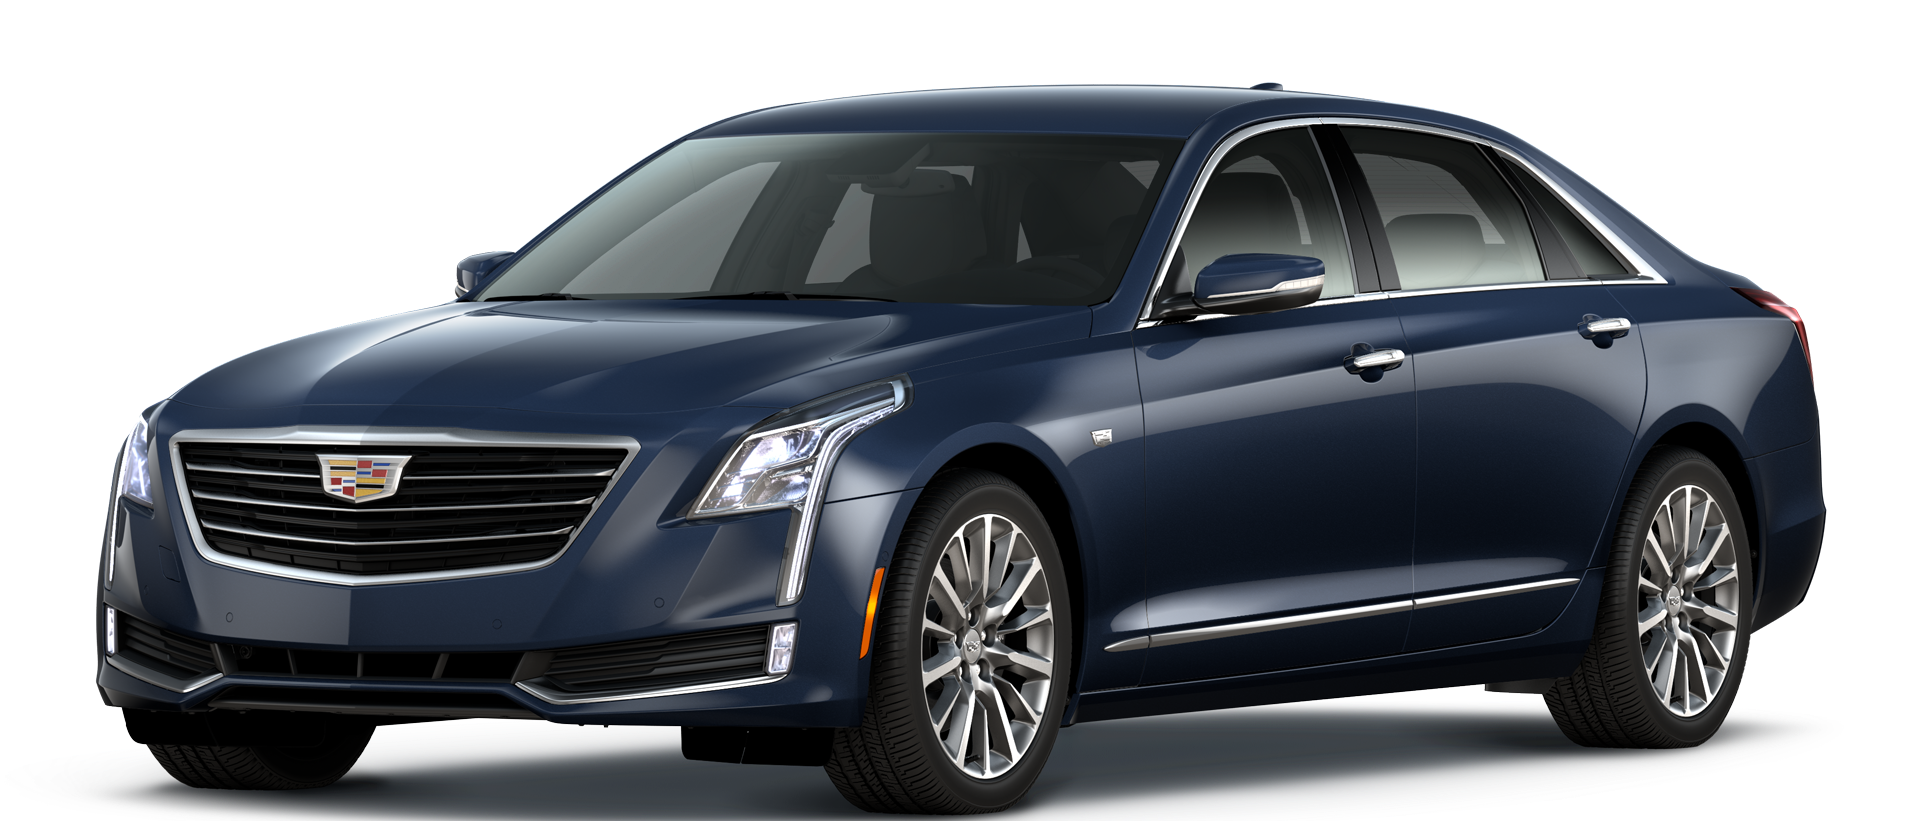 Cadillac Sedan Background 22845